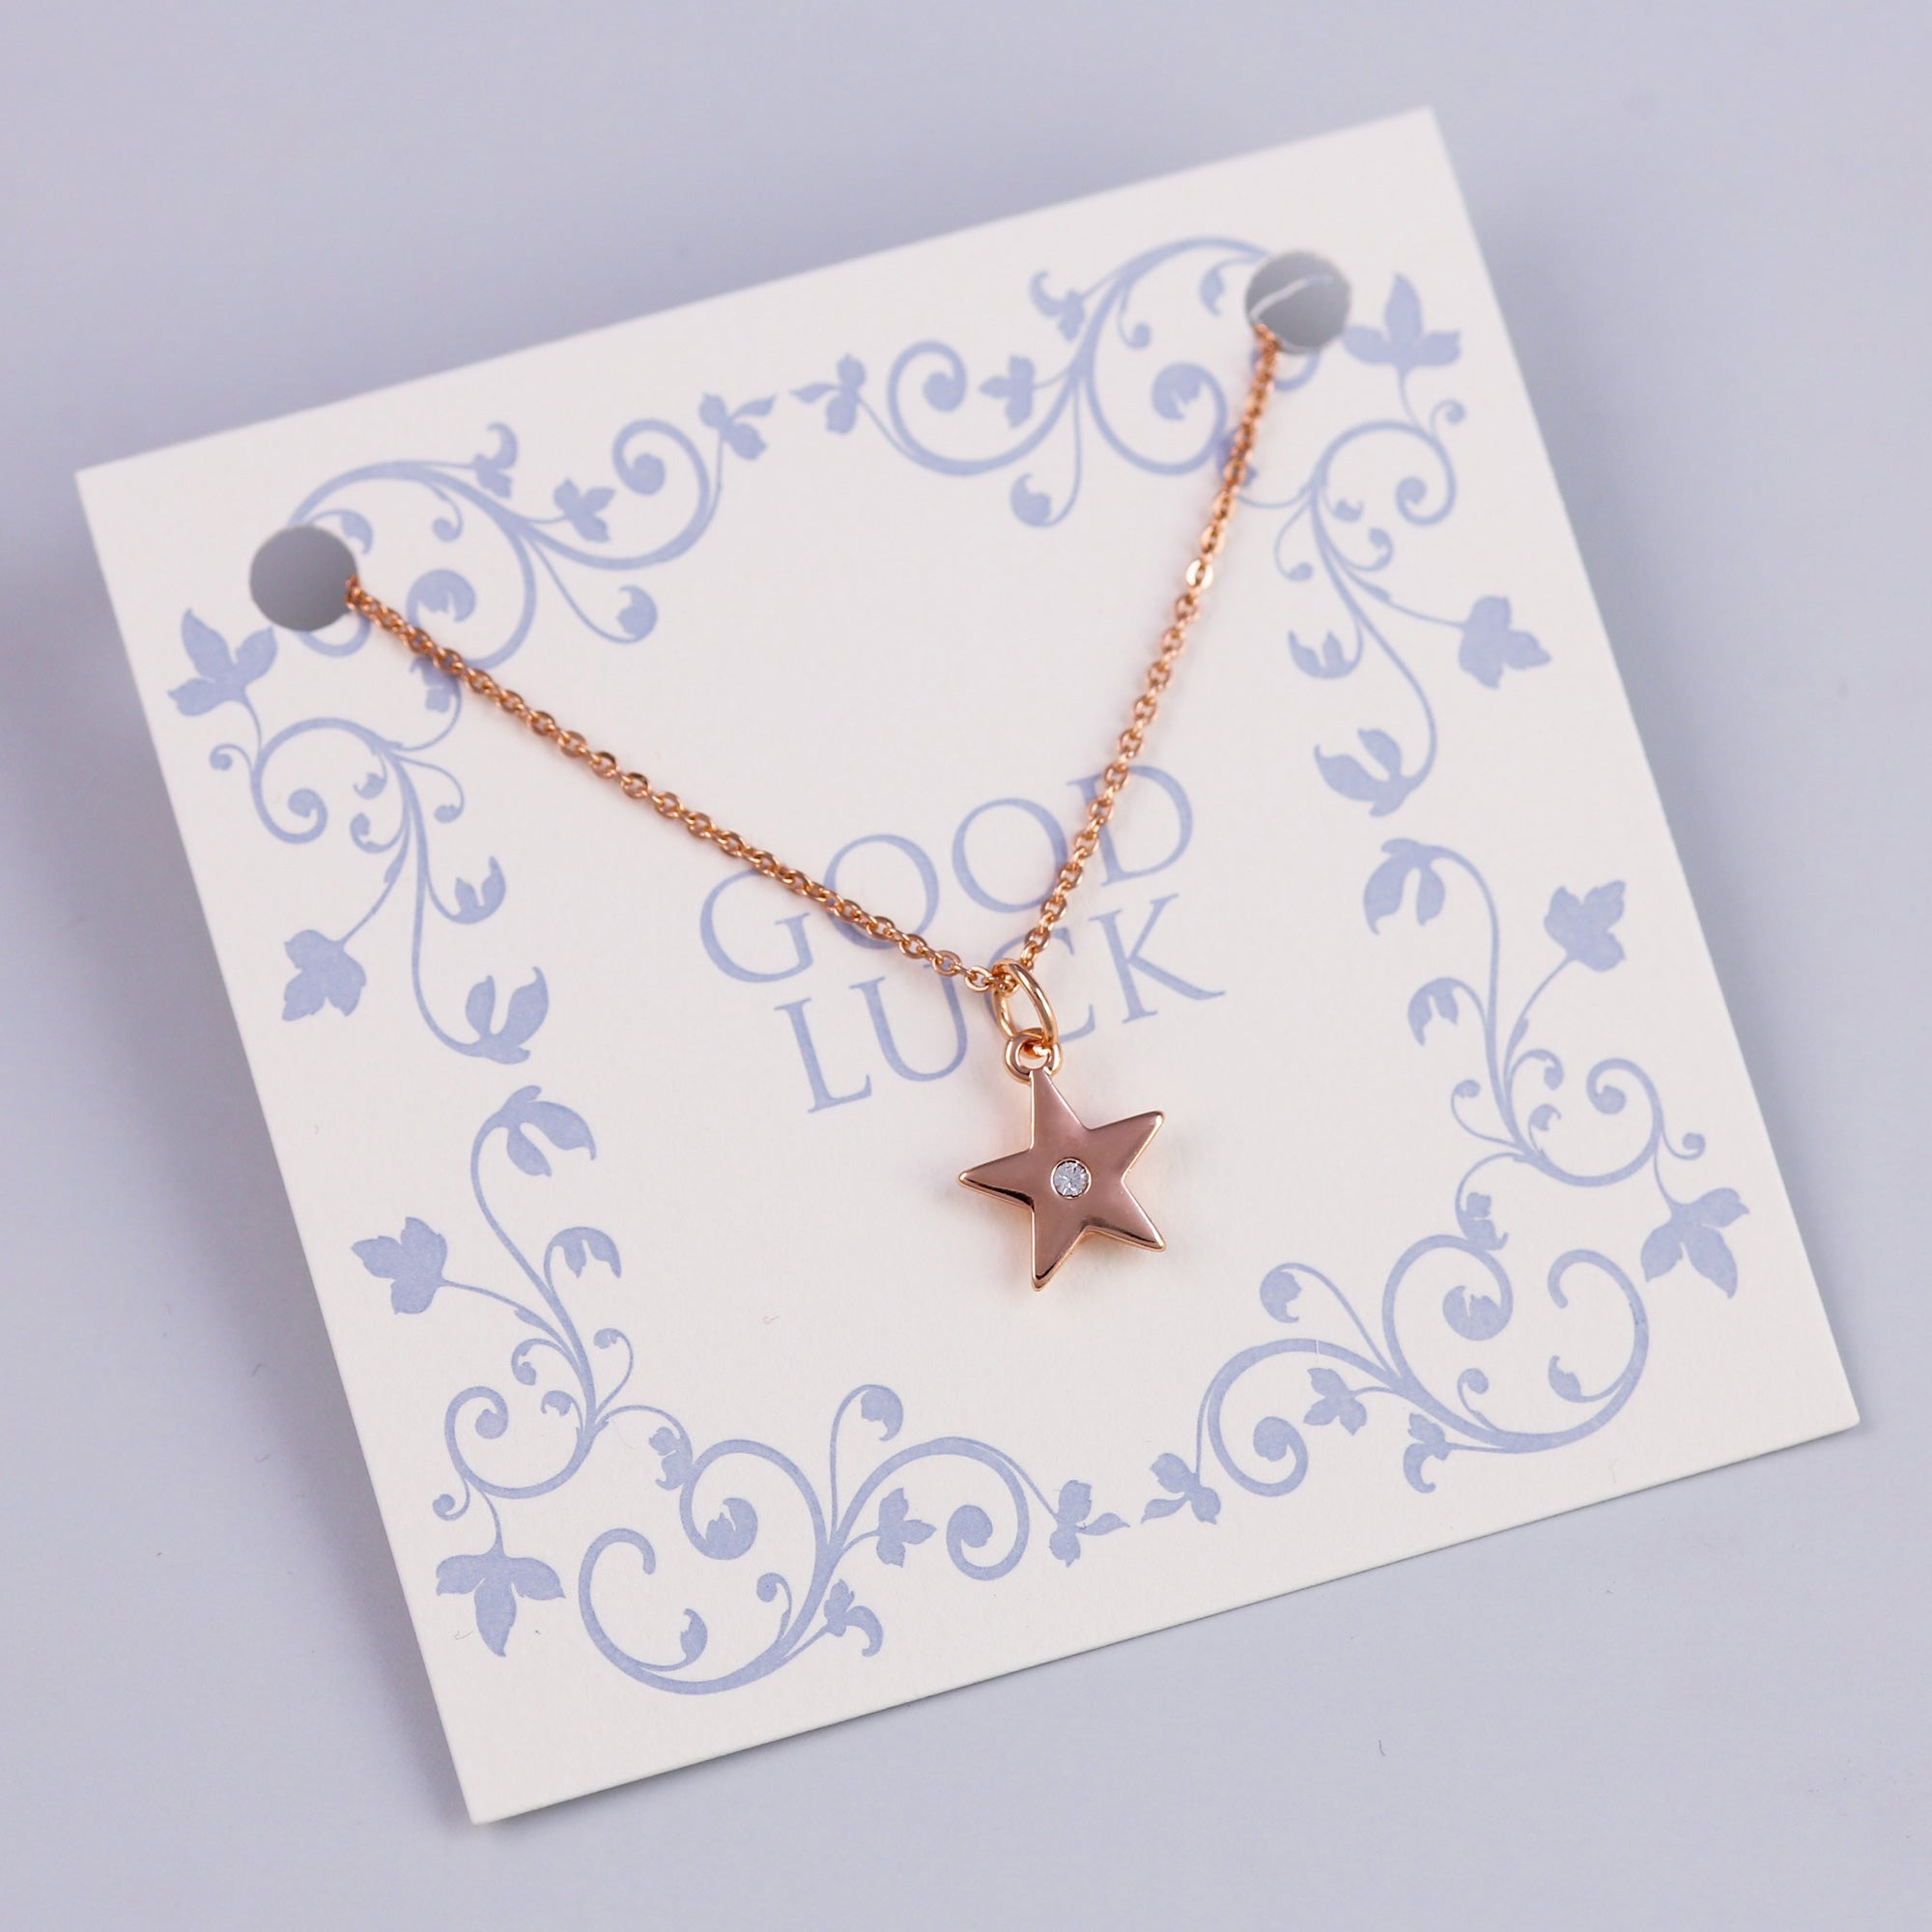 Good Luck Sentiment Card with Rose Gold Crystal Star